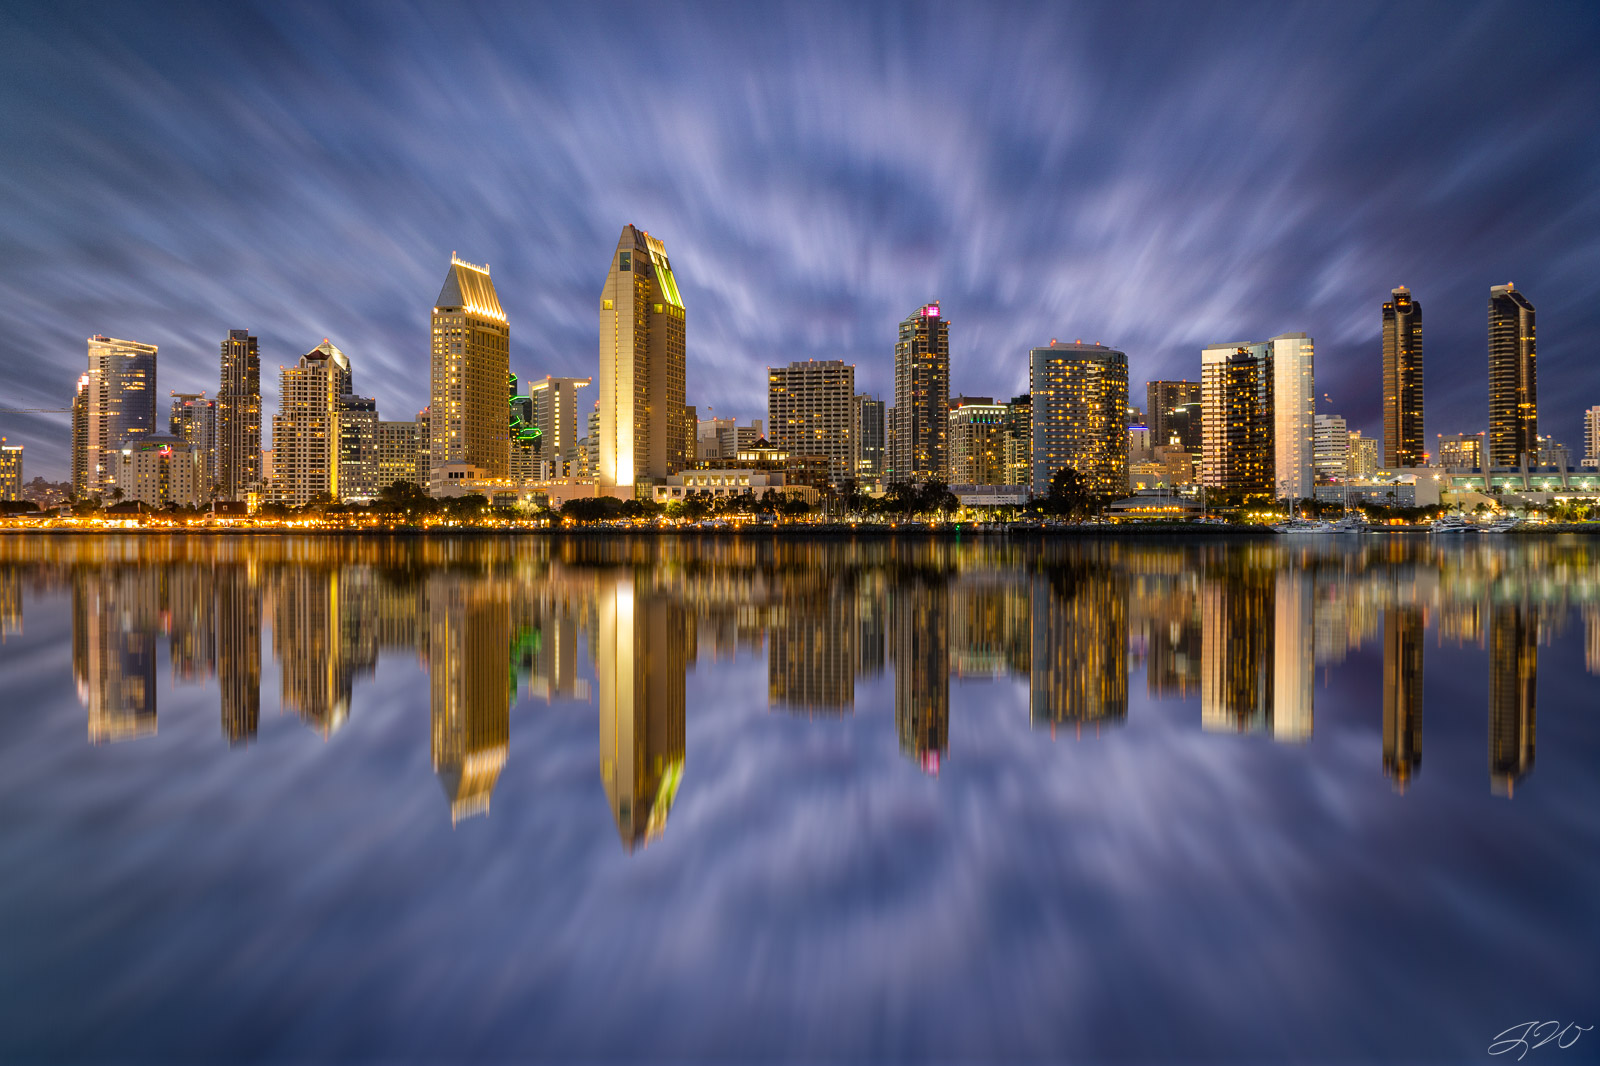 Fine Art Limited Edition of 100. The San Diego Skyline at night with an almost perfectly mirrored reflection on San Diego Bay...